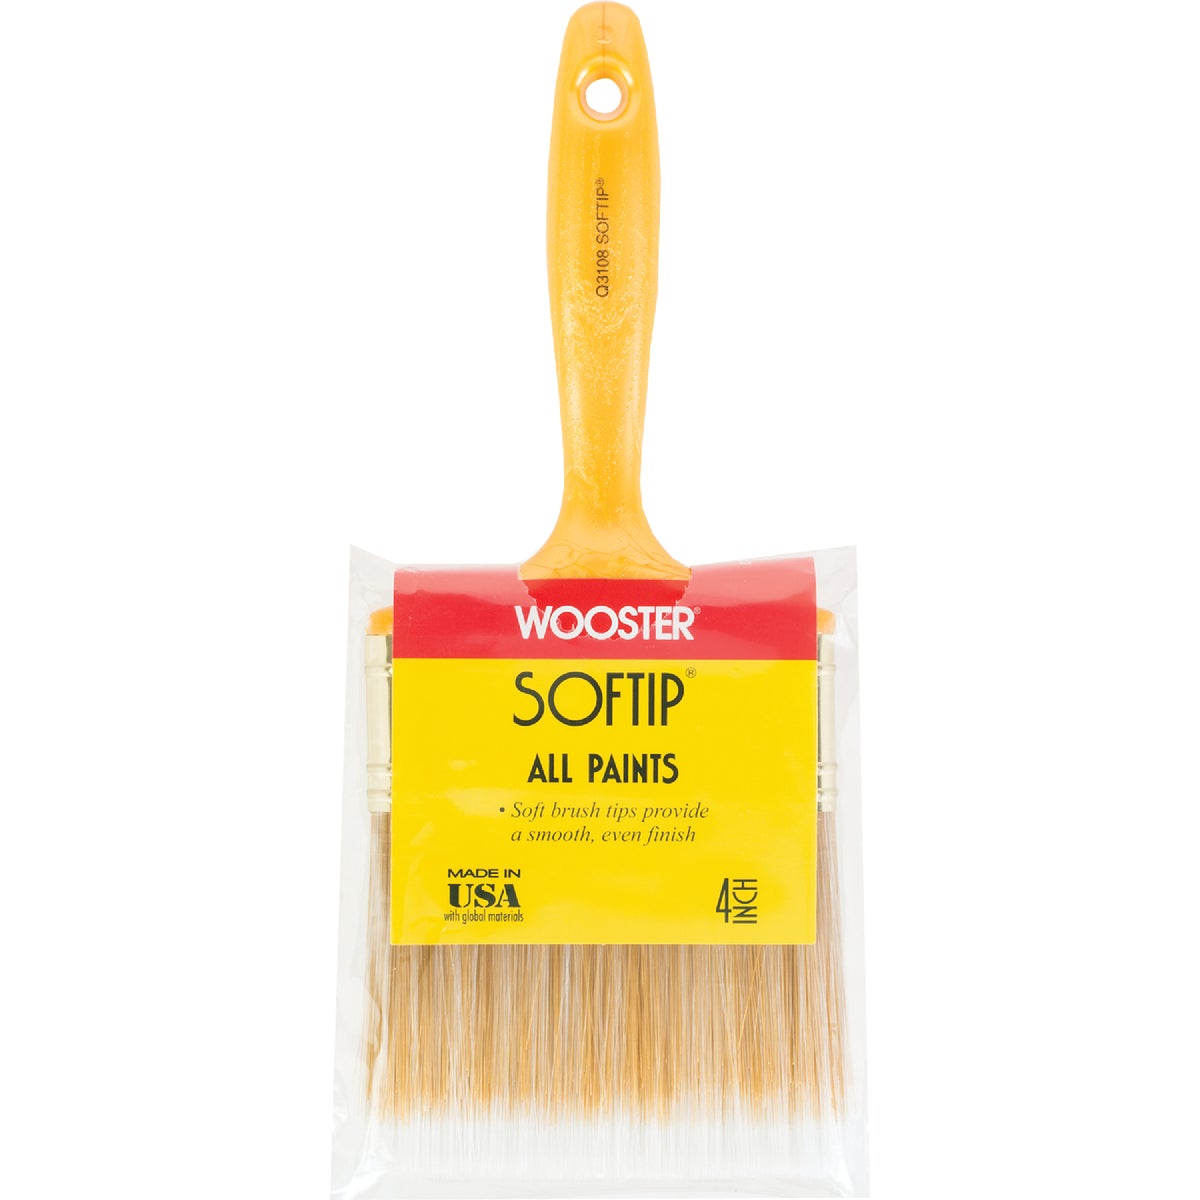 "4"" SOFTIP BRUSH - Q3108-4"" by Wooster Brush Co"